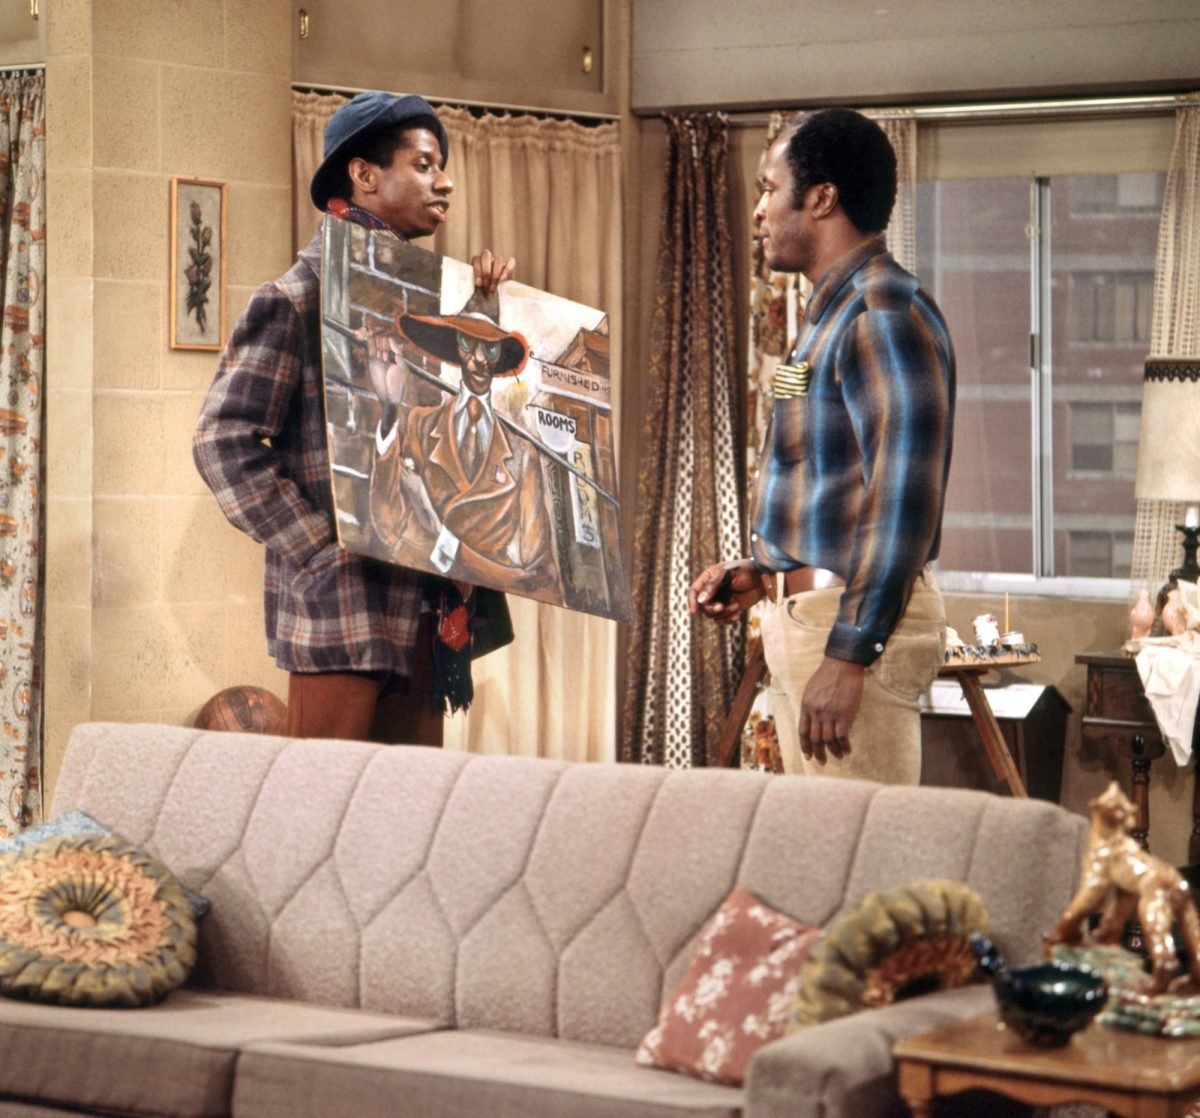 Jimmie Walker holds a painting in front of John Amos